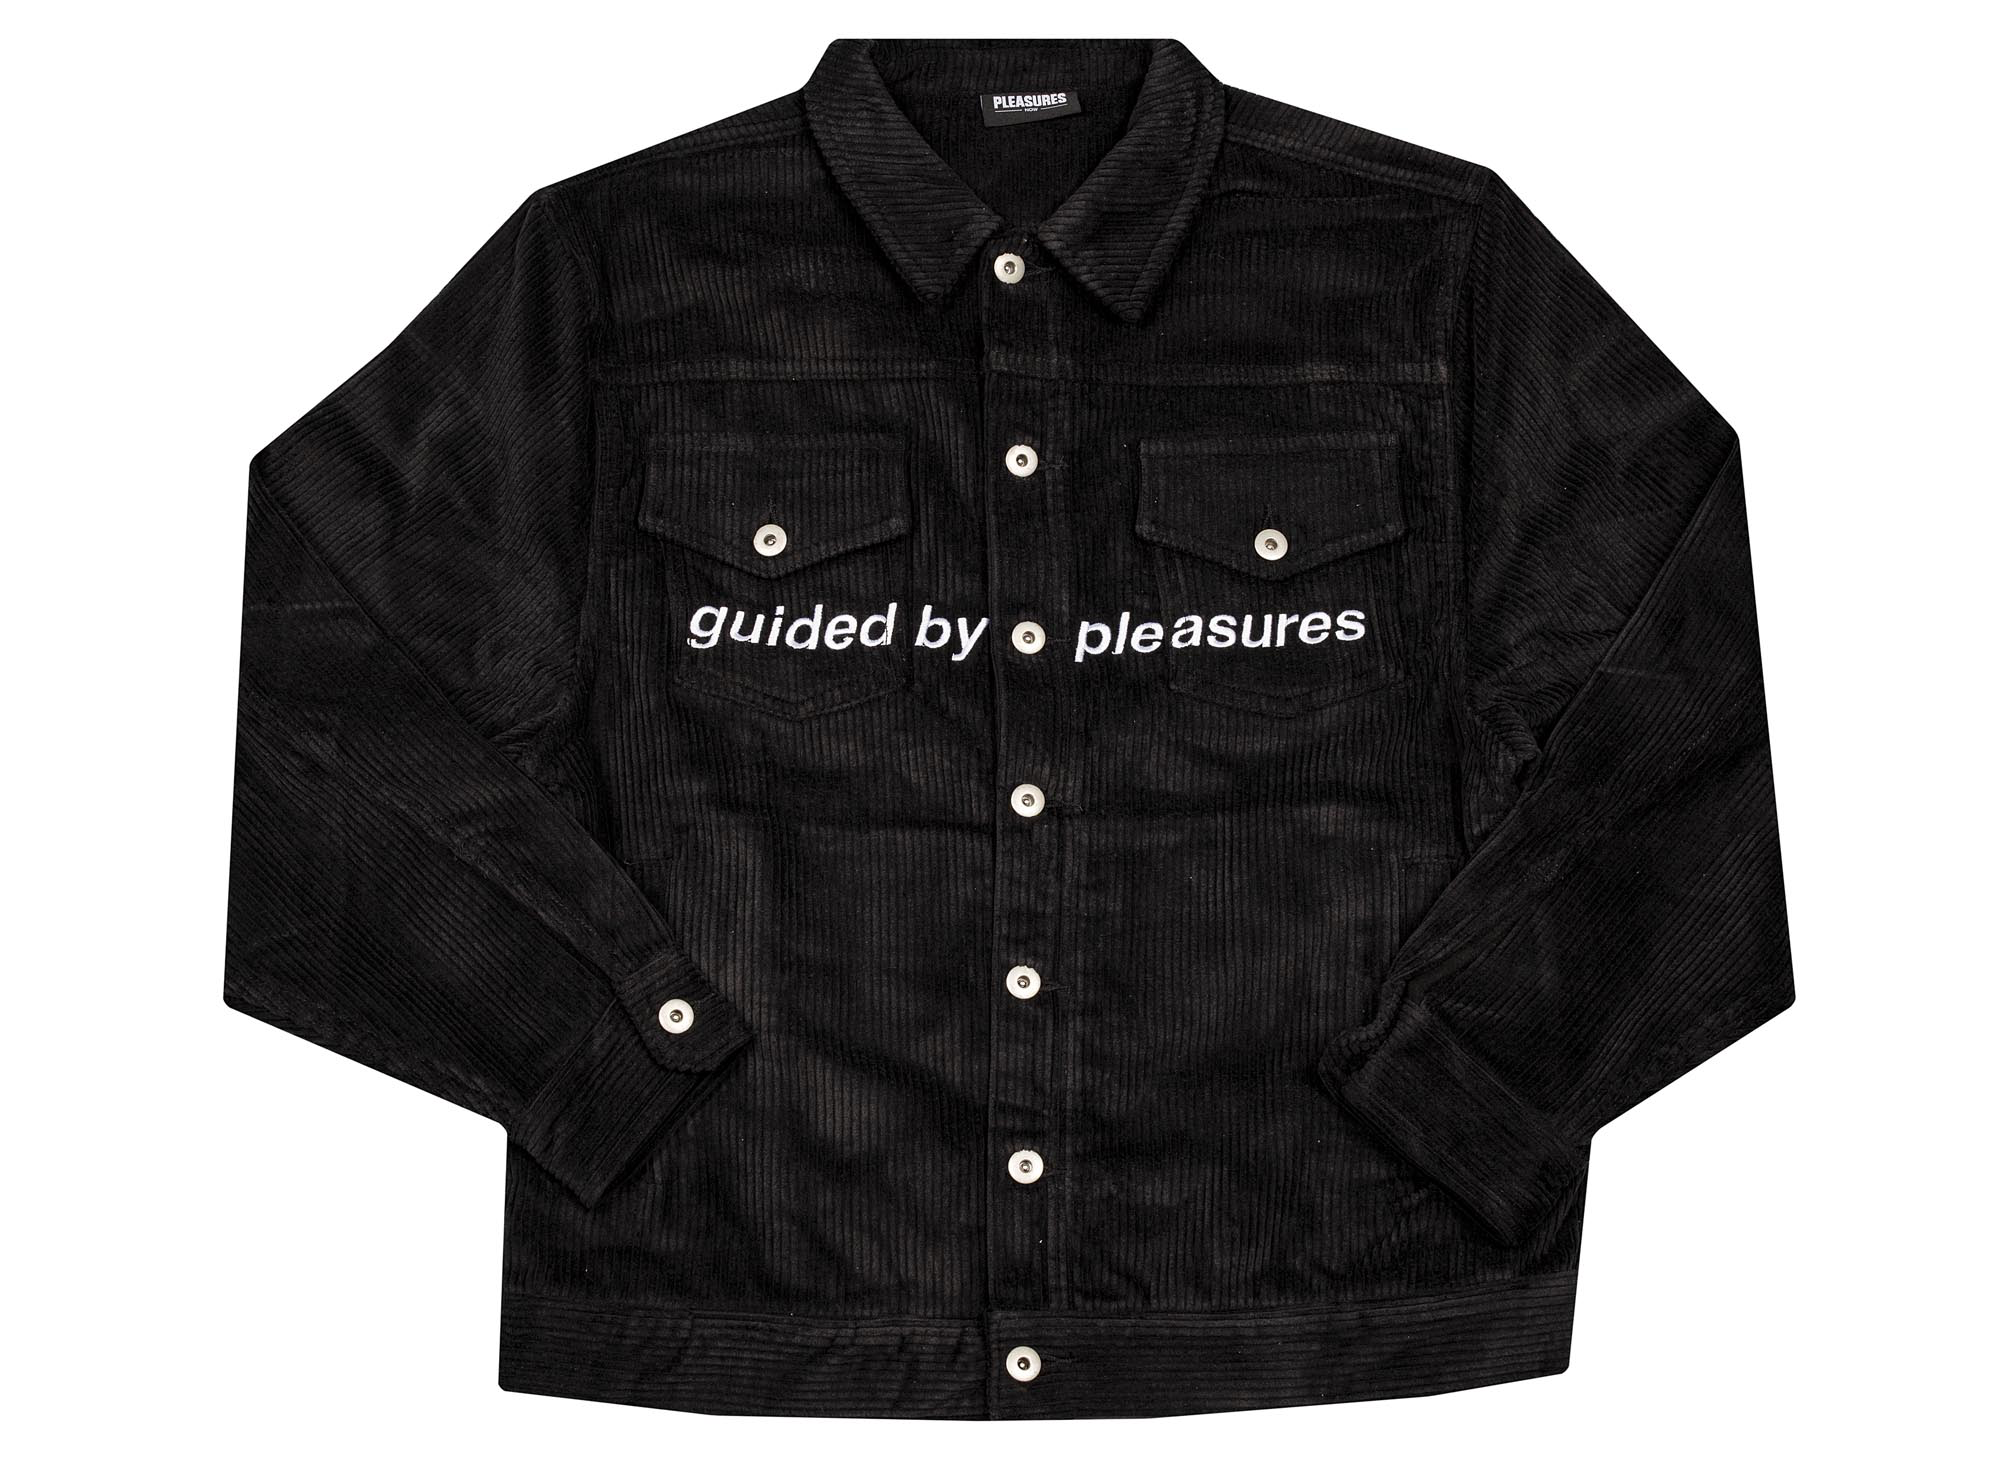 Pleasures Guided Corduroy Trucker Jacket 'Black'